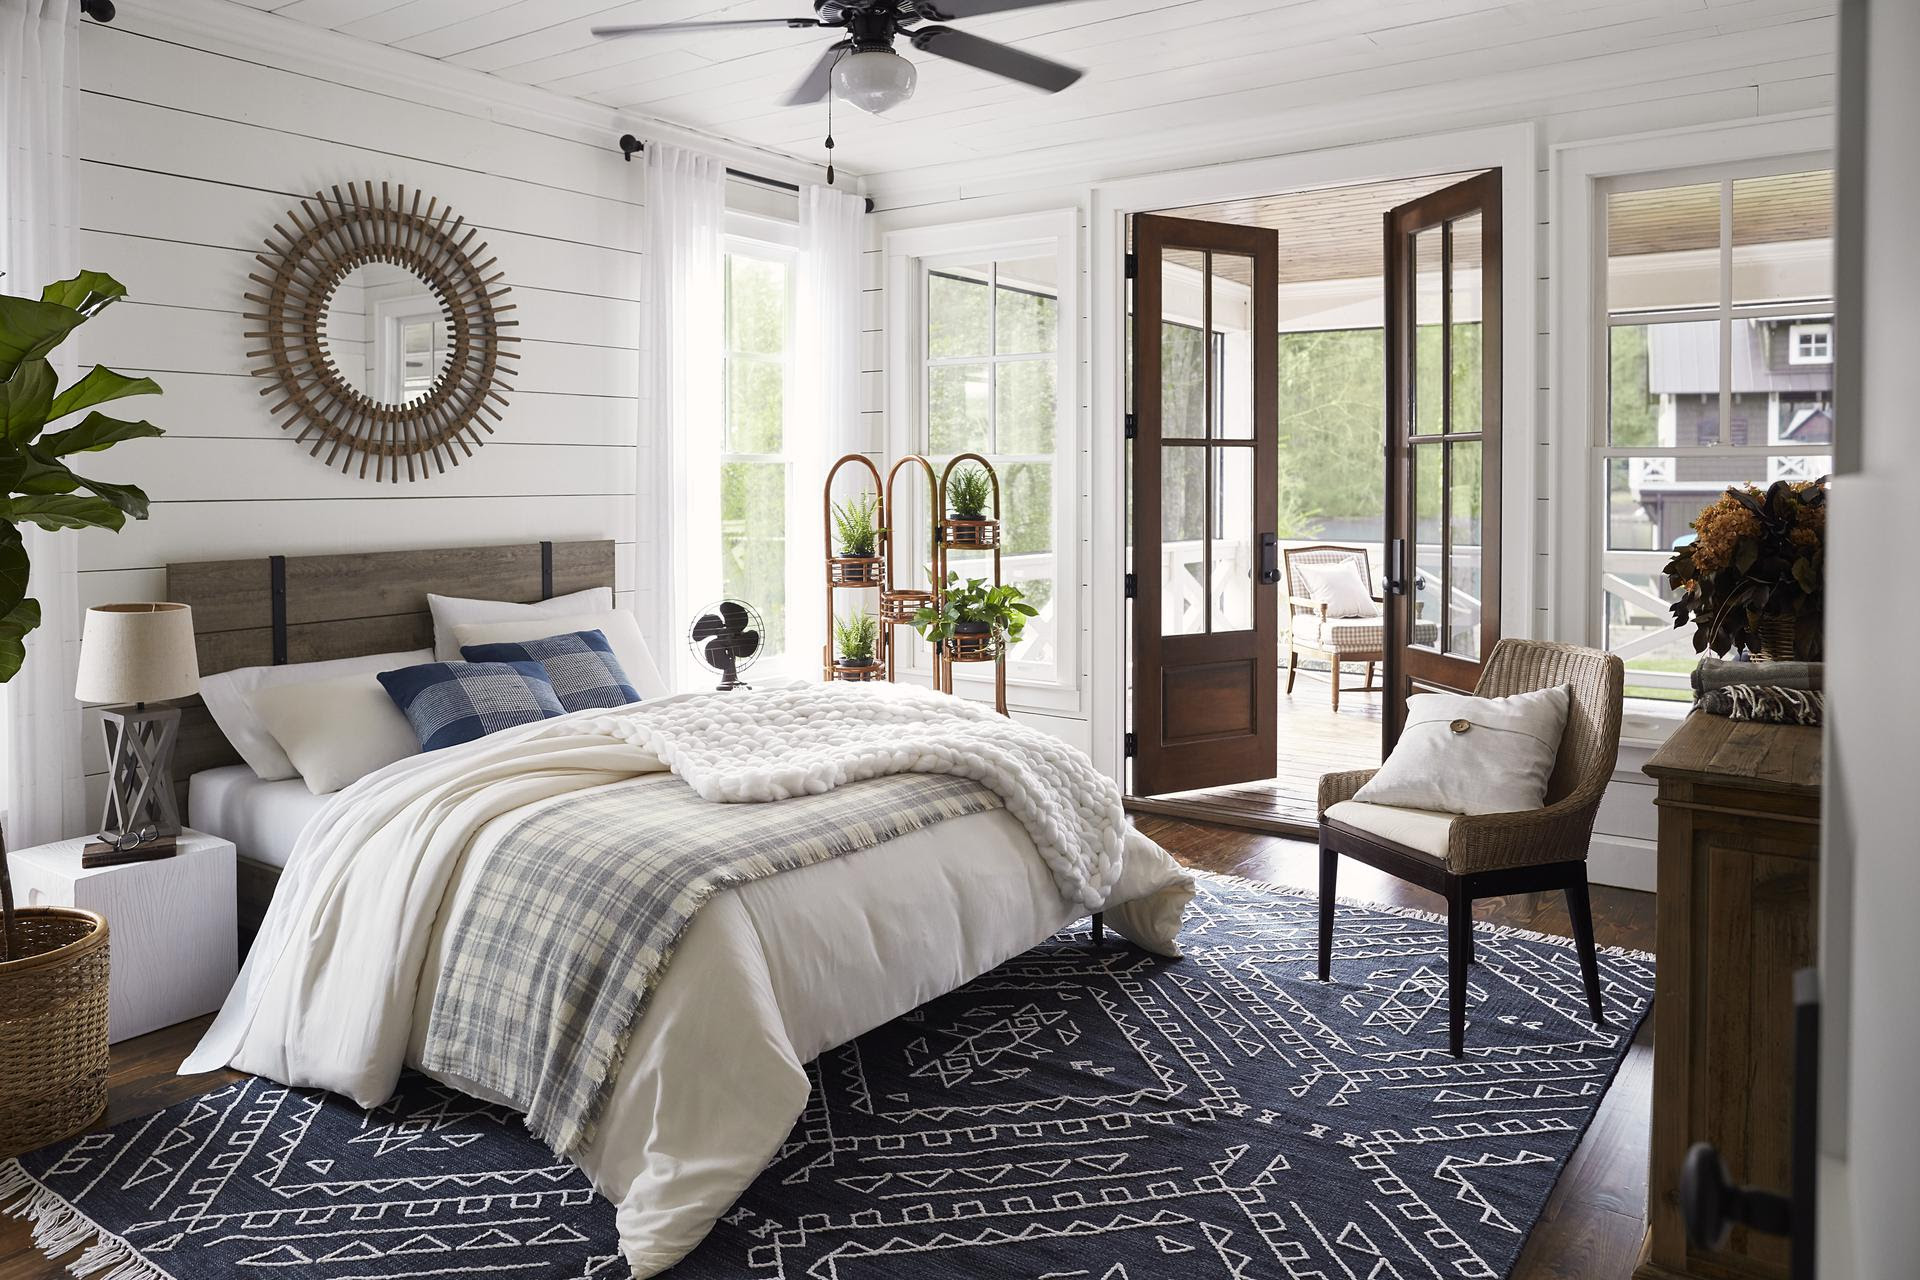 Lake House Bedroom Paint Color Ideas, Furniture & Decor ...